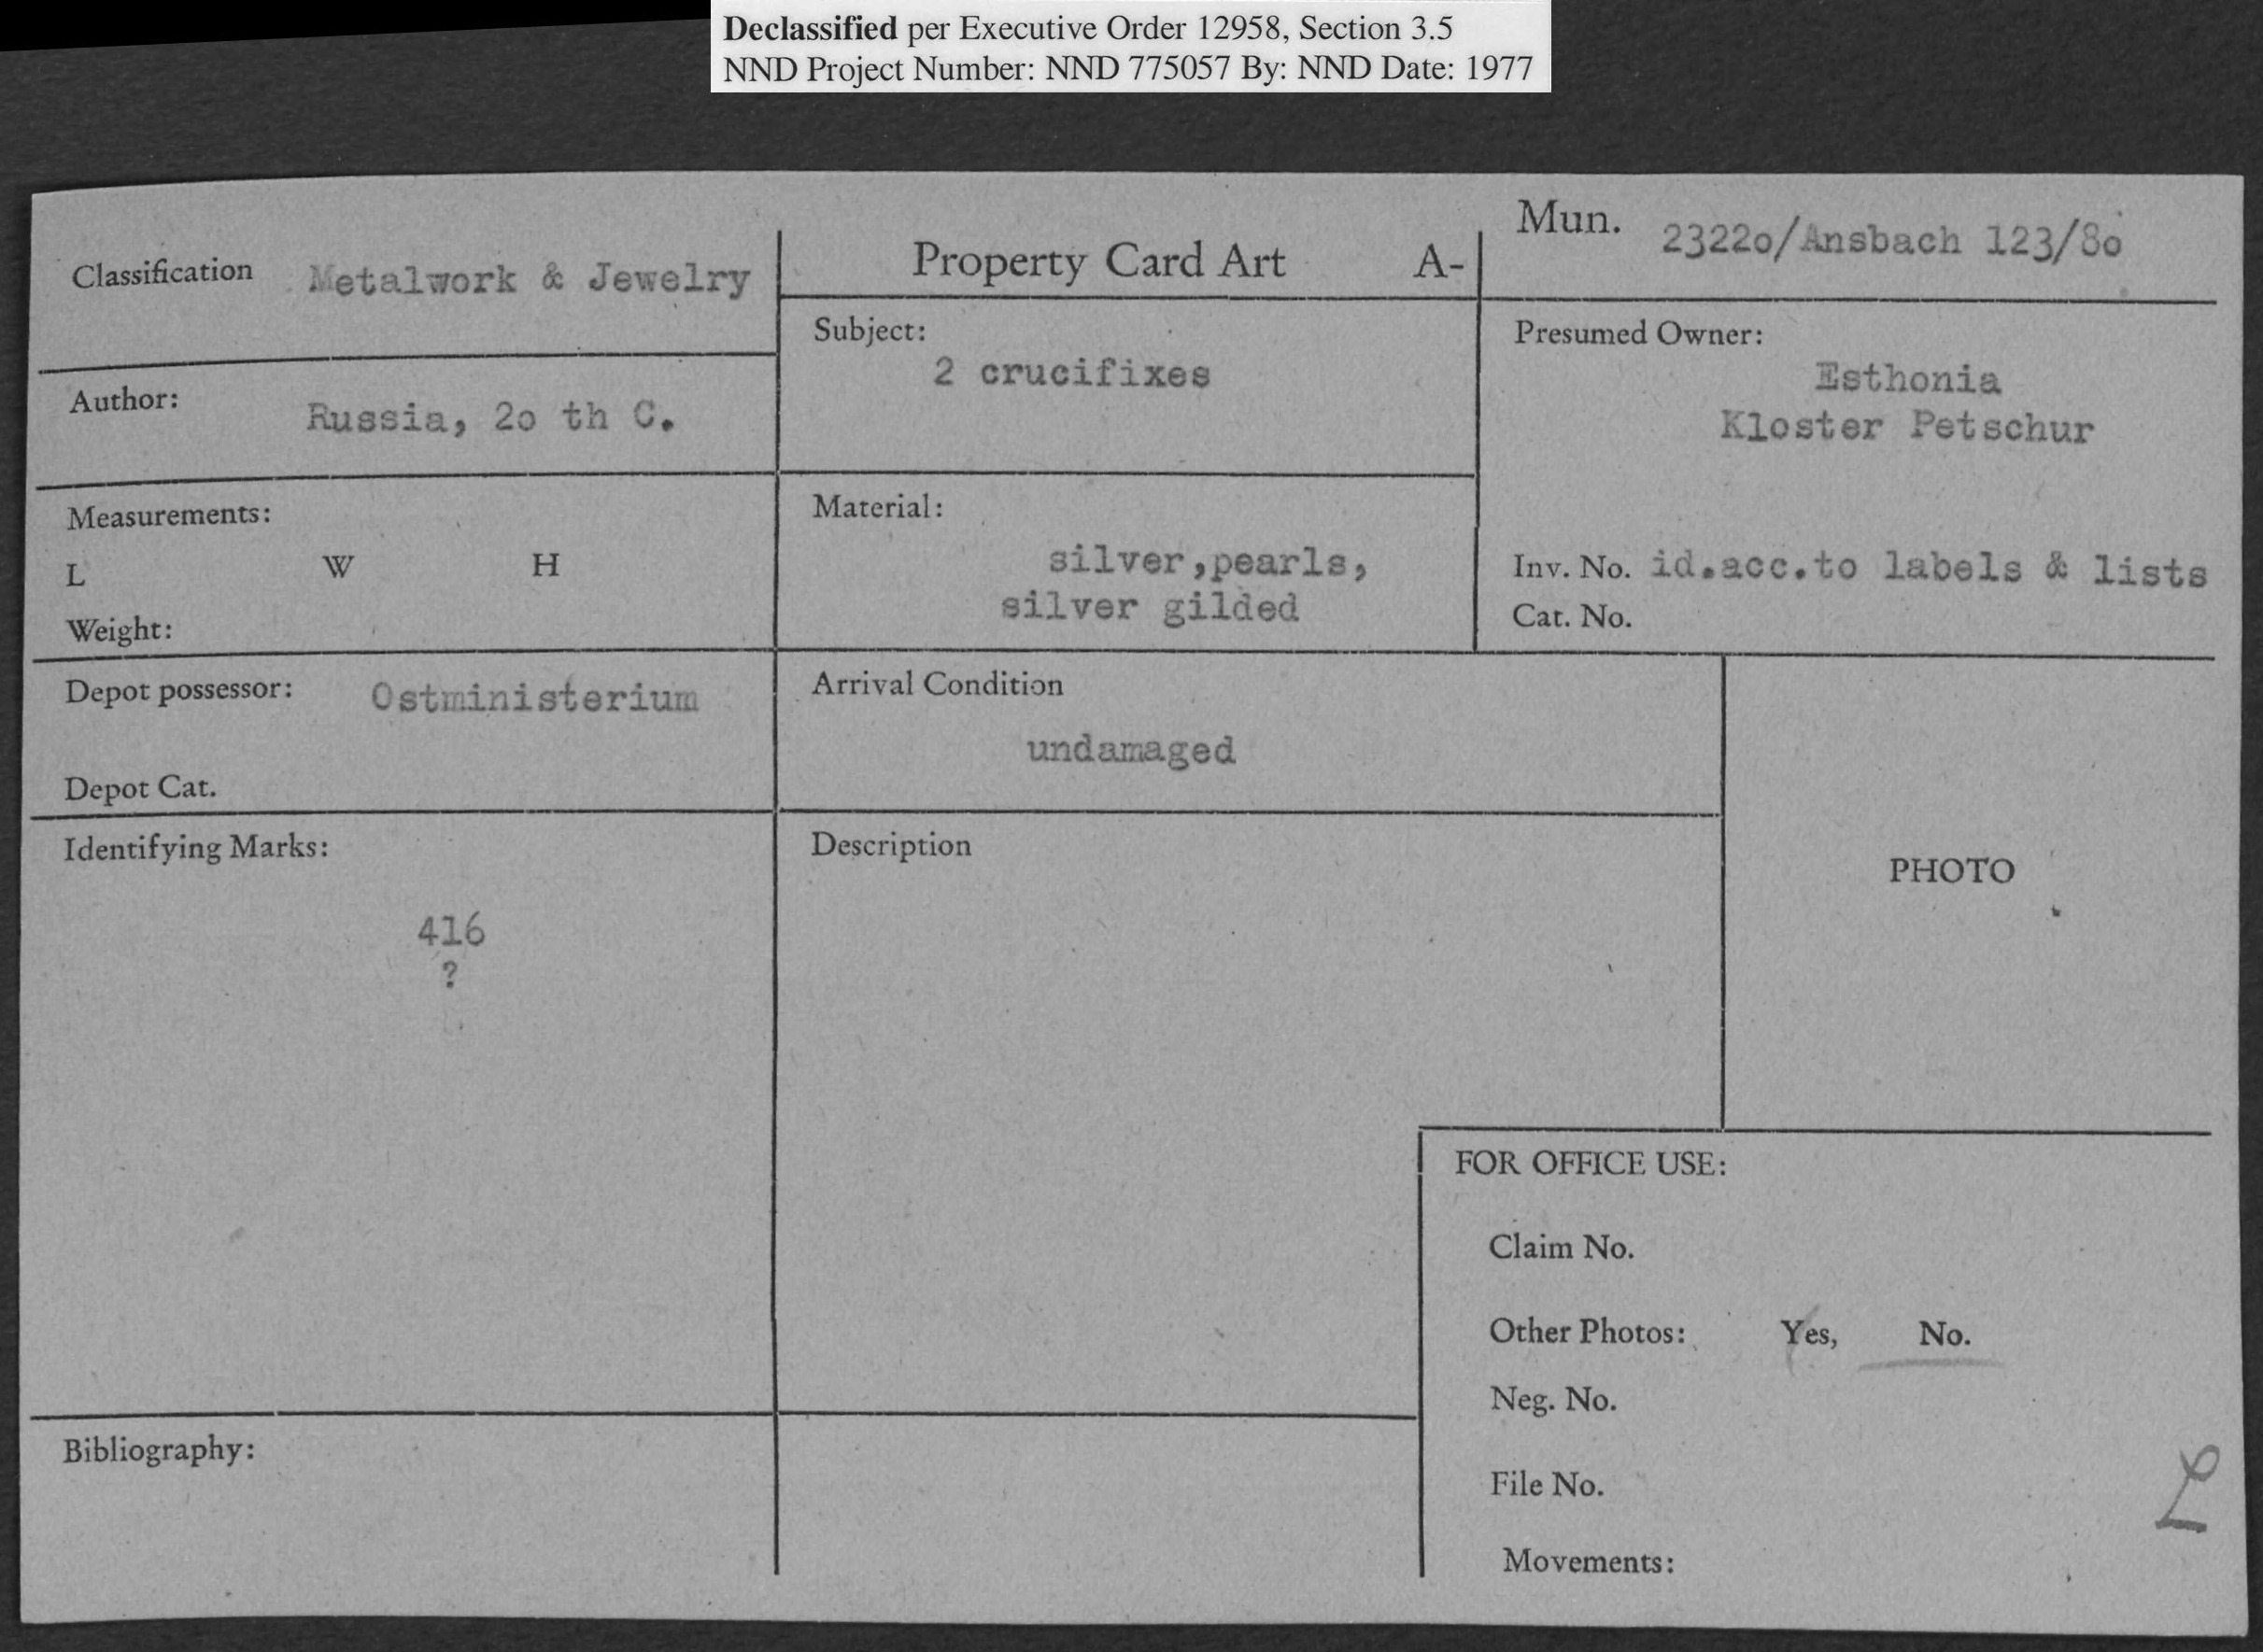 Metalwork & Jewelry: 2 Crucifixes, Property Card Number 23220/Ansbach 123/80